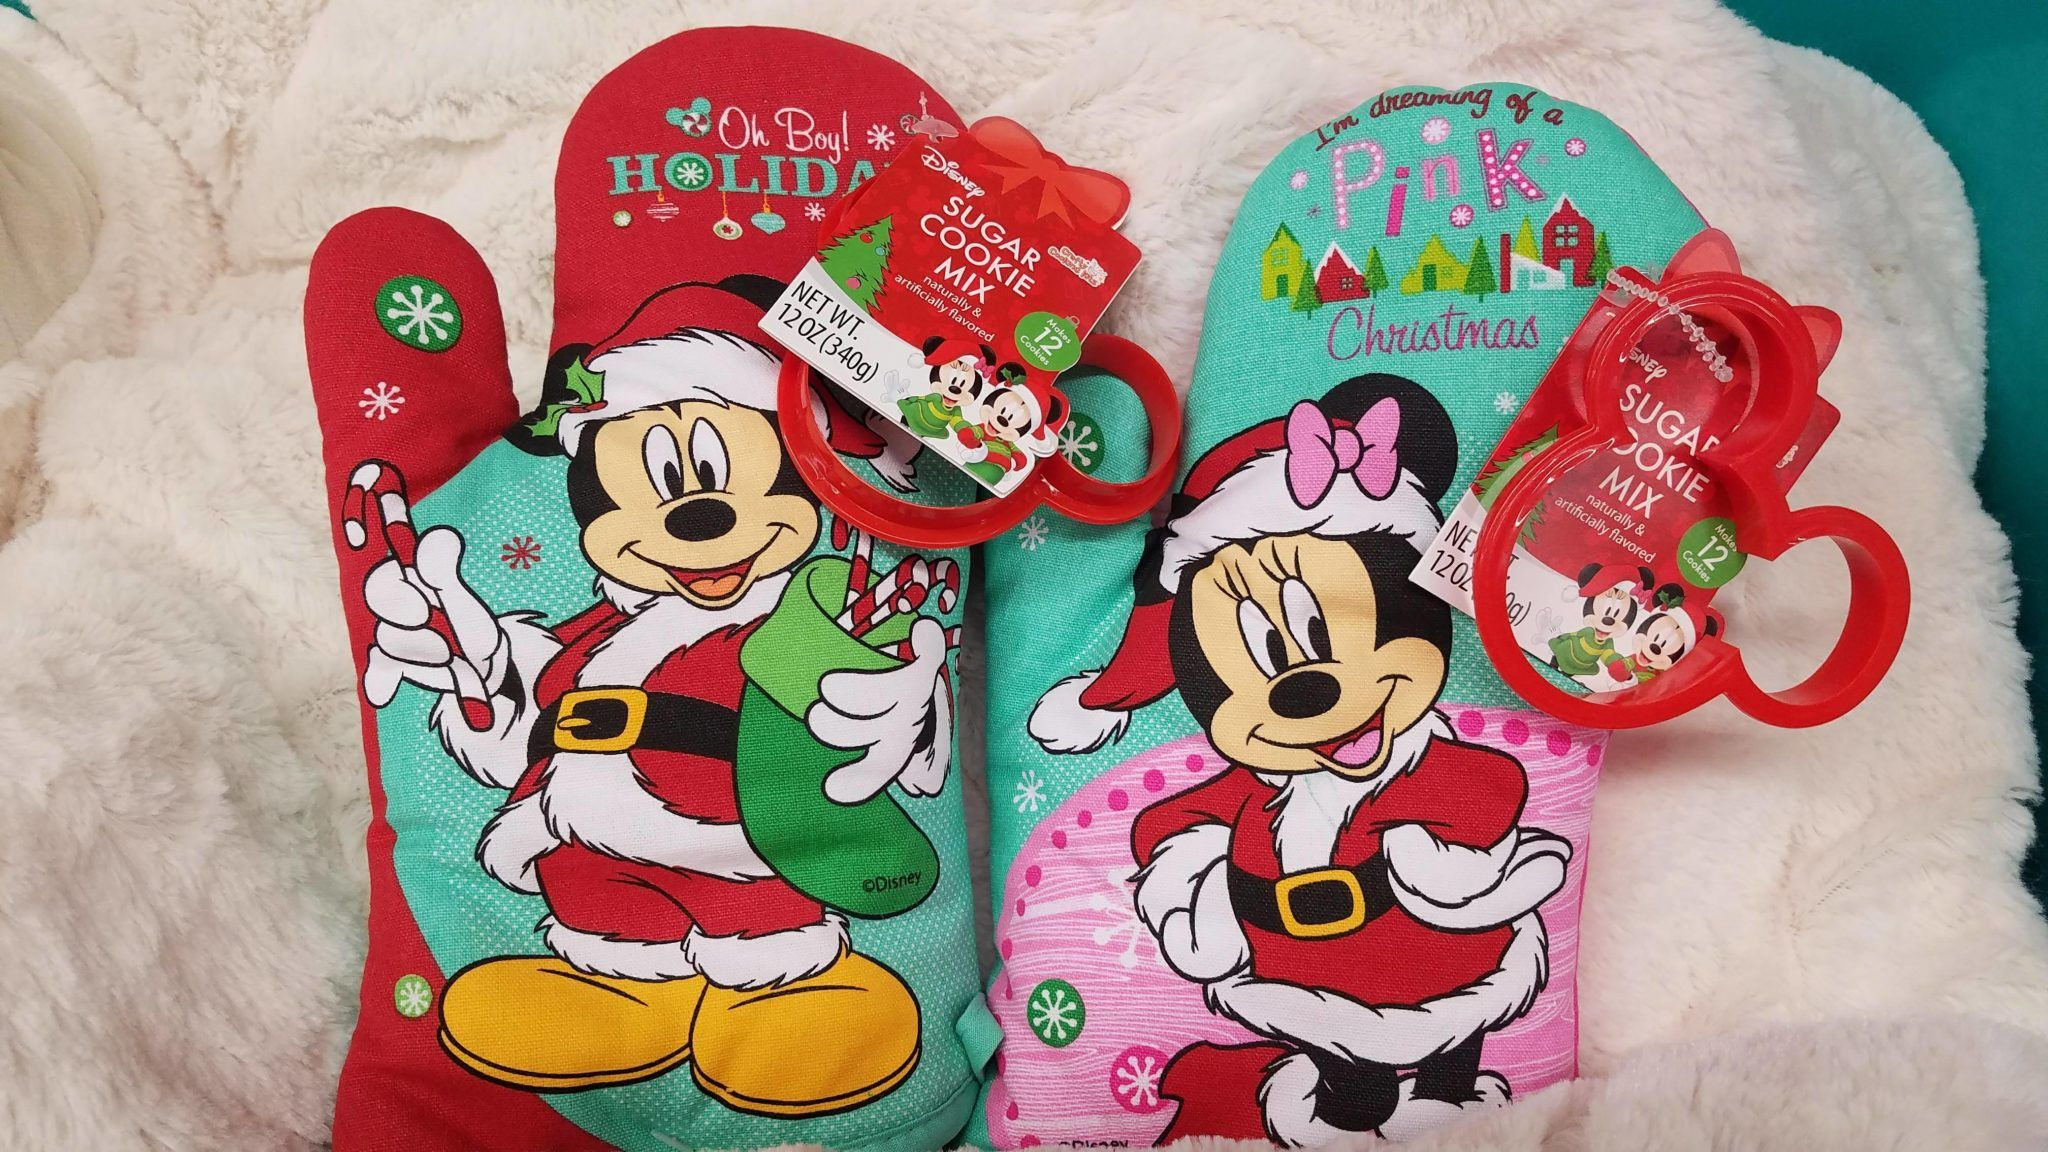 We All Need This Disney Christmas Cookies Oven Mitt From Aldi S Disney Christmas Magical Christmas Christmas Cookies